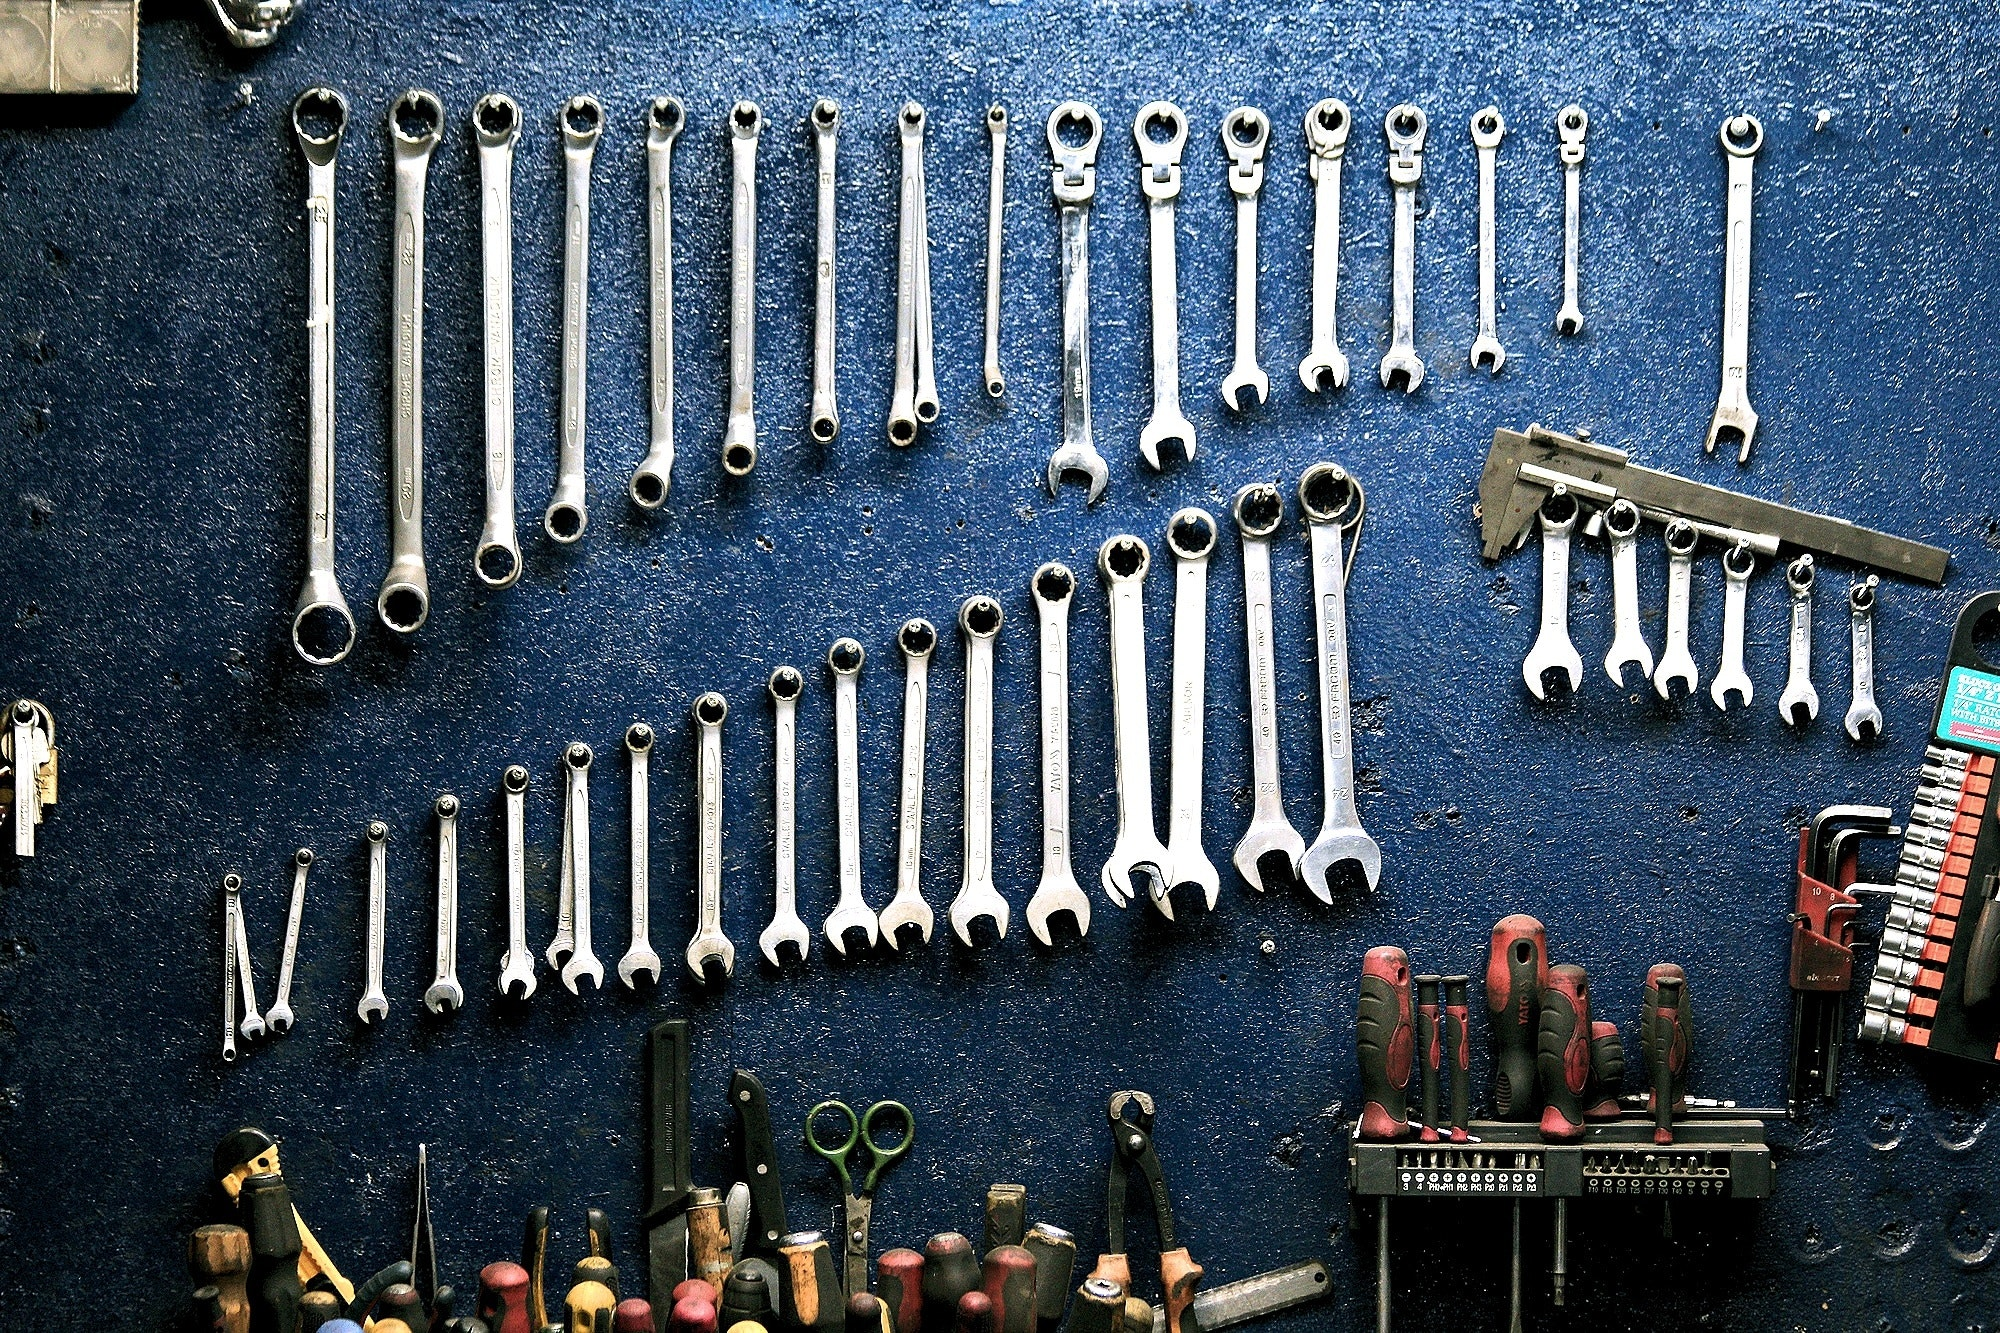 Wrenches and other tools hung up on a blue wall.